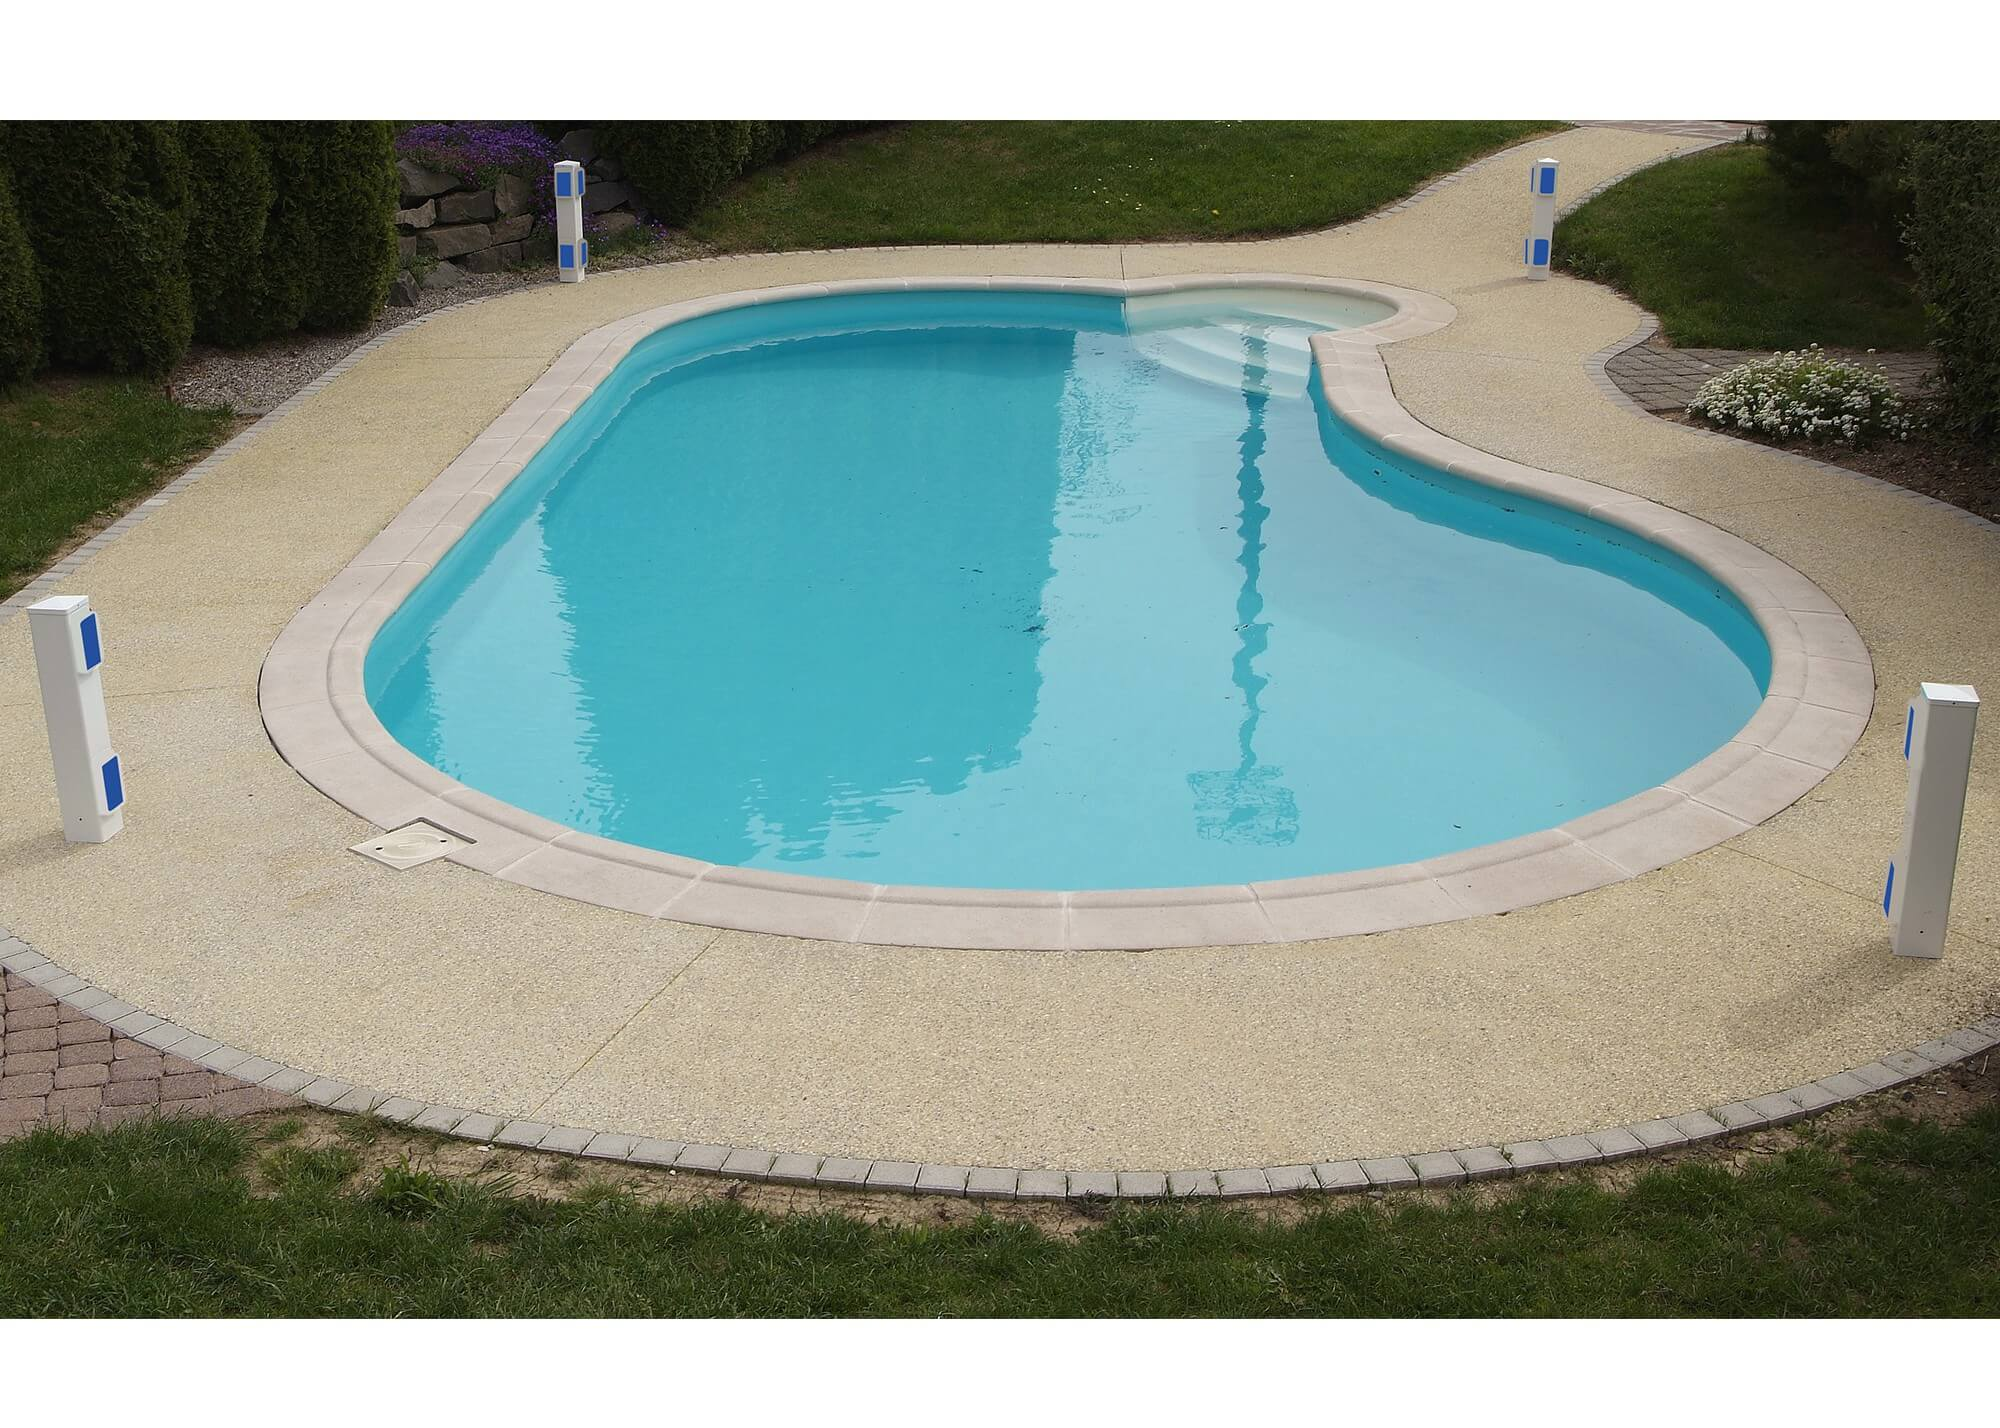 Alarme Barriere Infrarouge Exterieur Alarme à Infrarouge Primaprotect Piscines Waterair